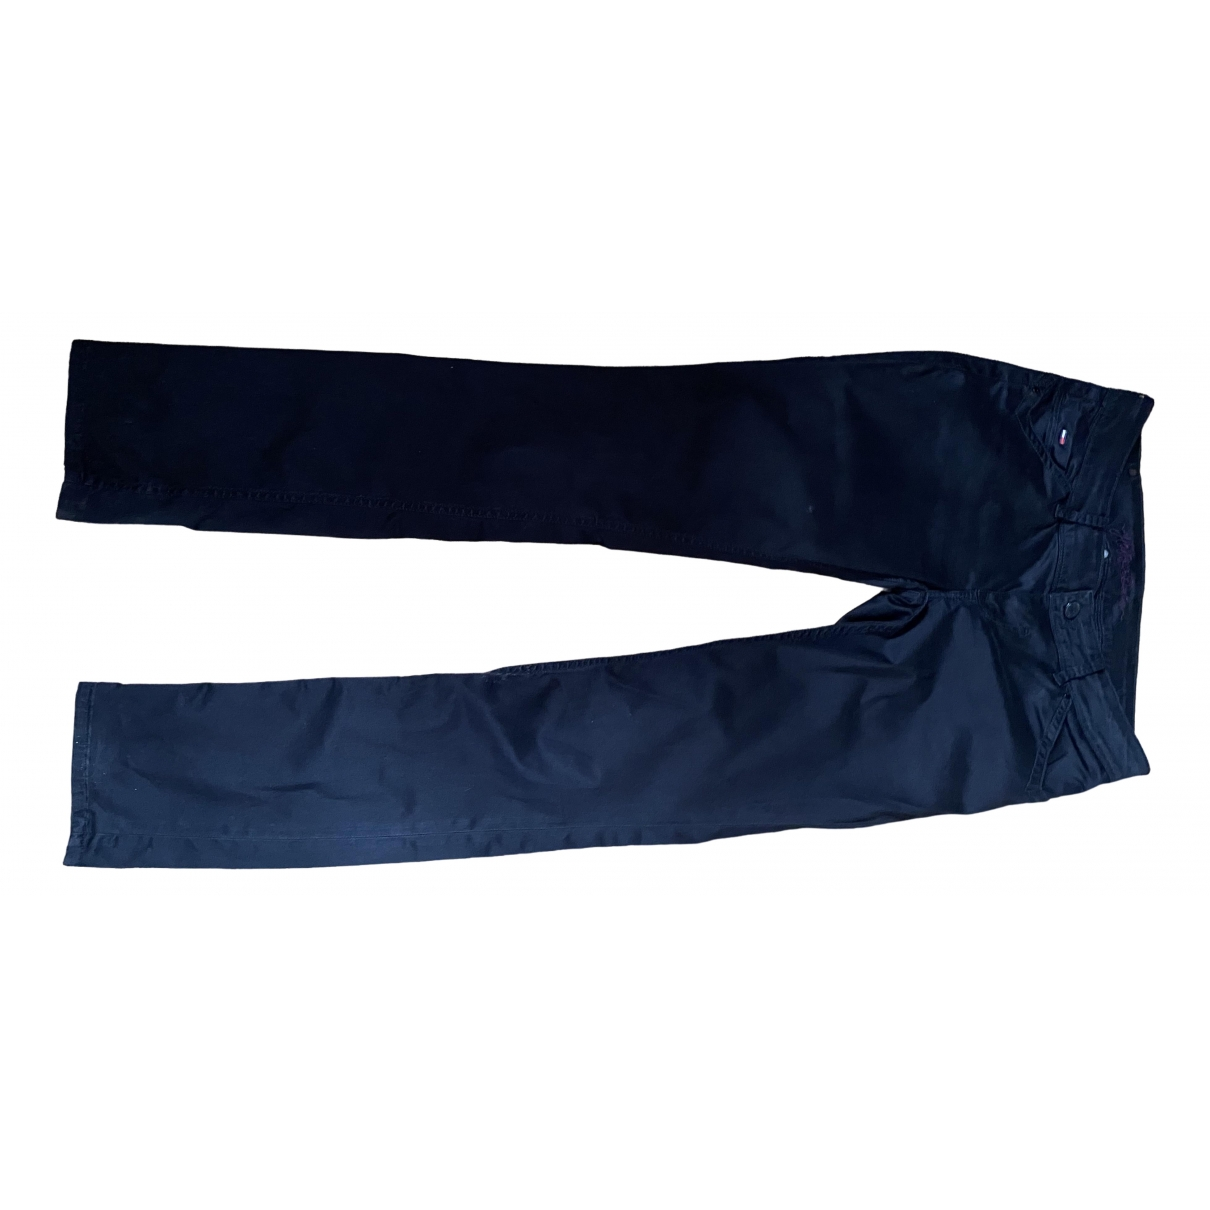 Tommy Hilfiger \N Black Cotton Trousers for Women 40 FR